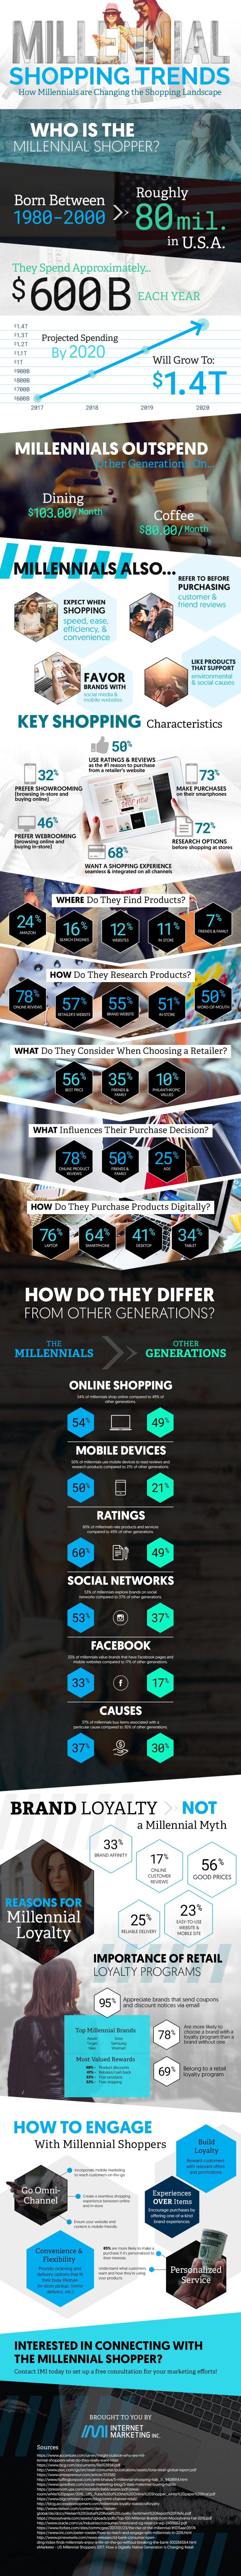 How Millennials Are Changing The Shopping Landscape